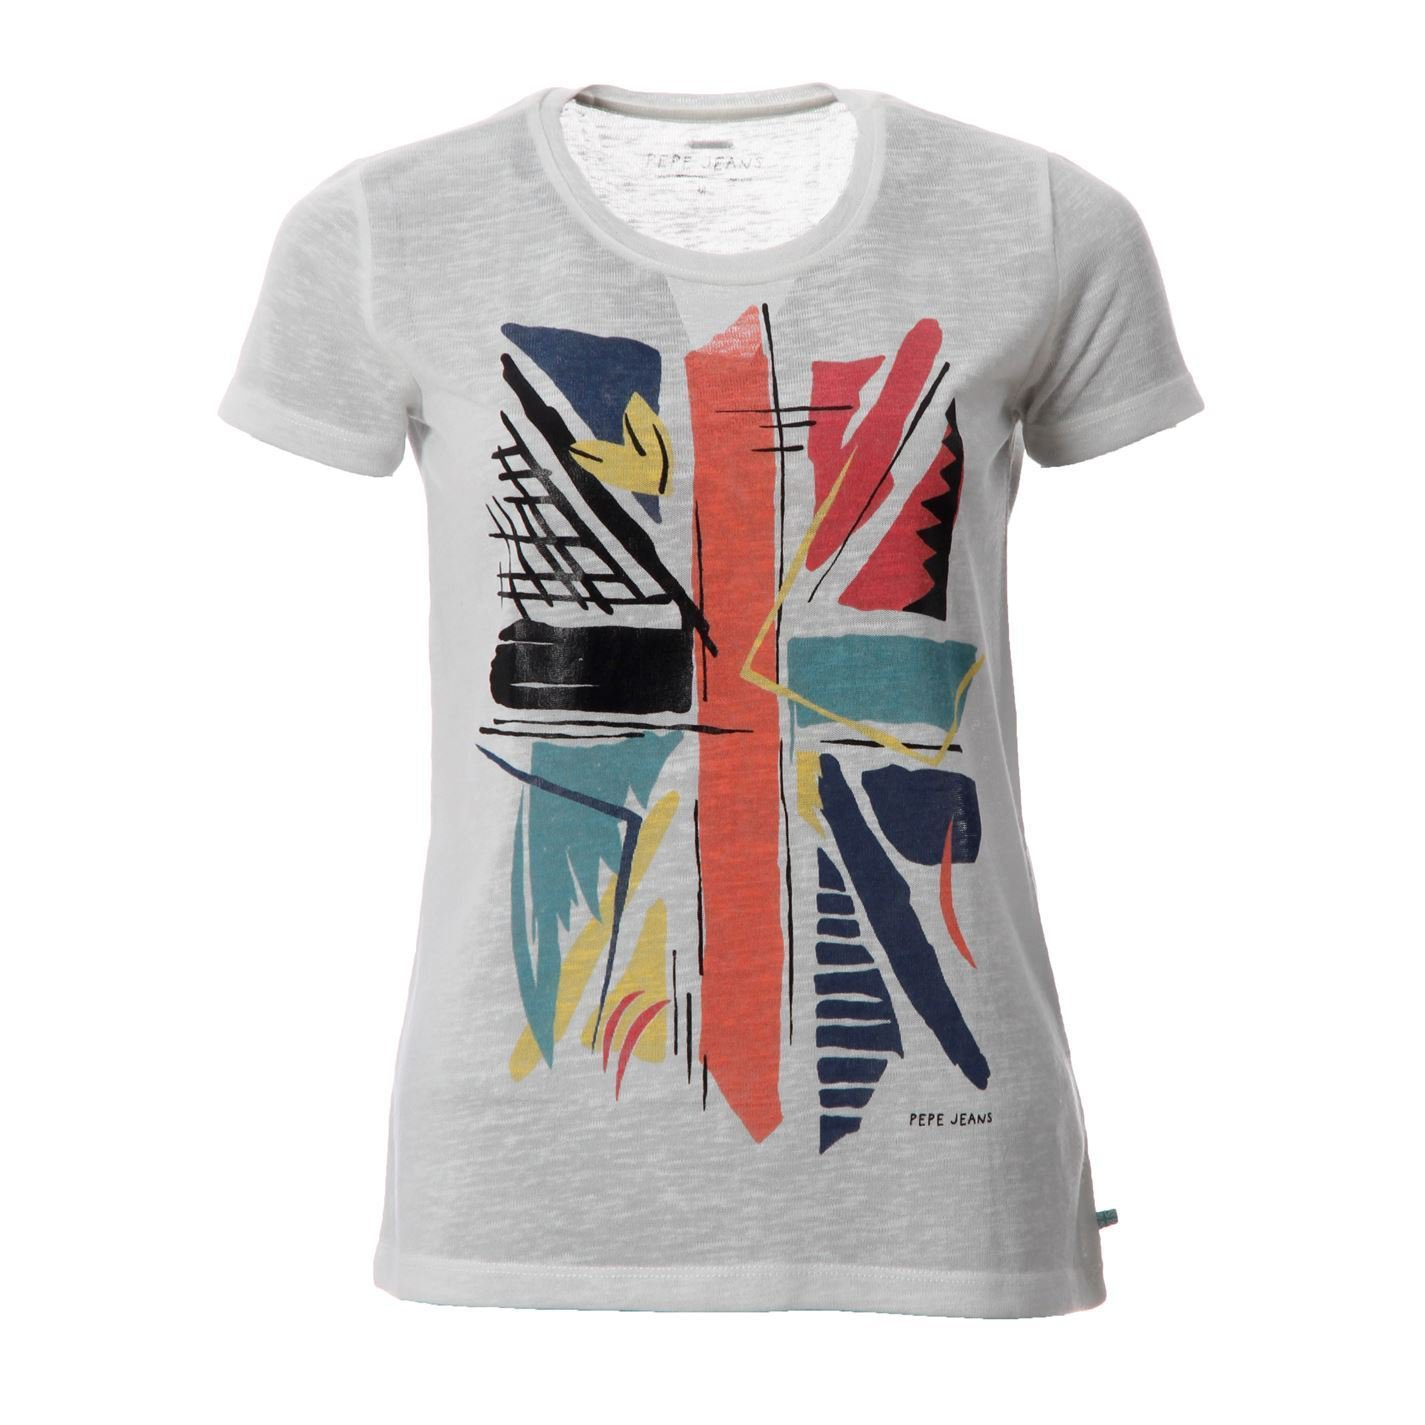 Pepe Jeans Womens Cruz Printed T Shirt Short Sleeve Tee Casual Top Ladies